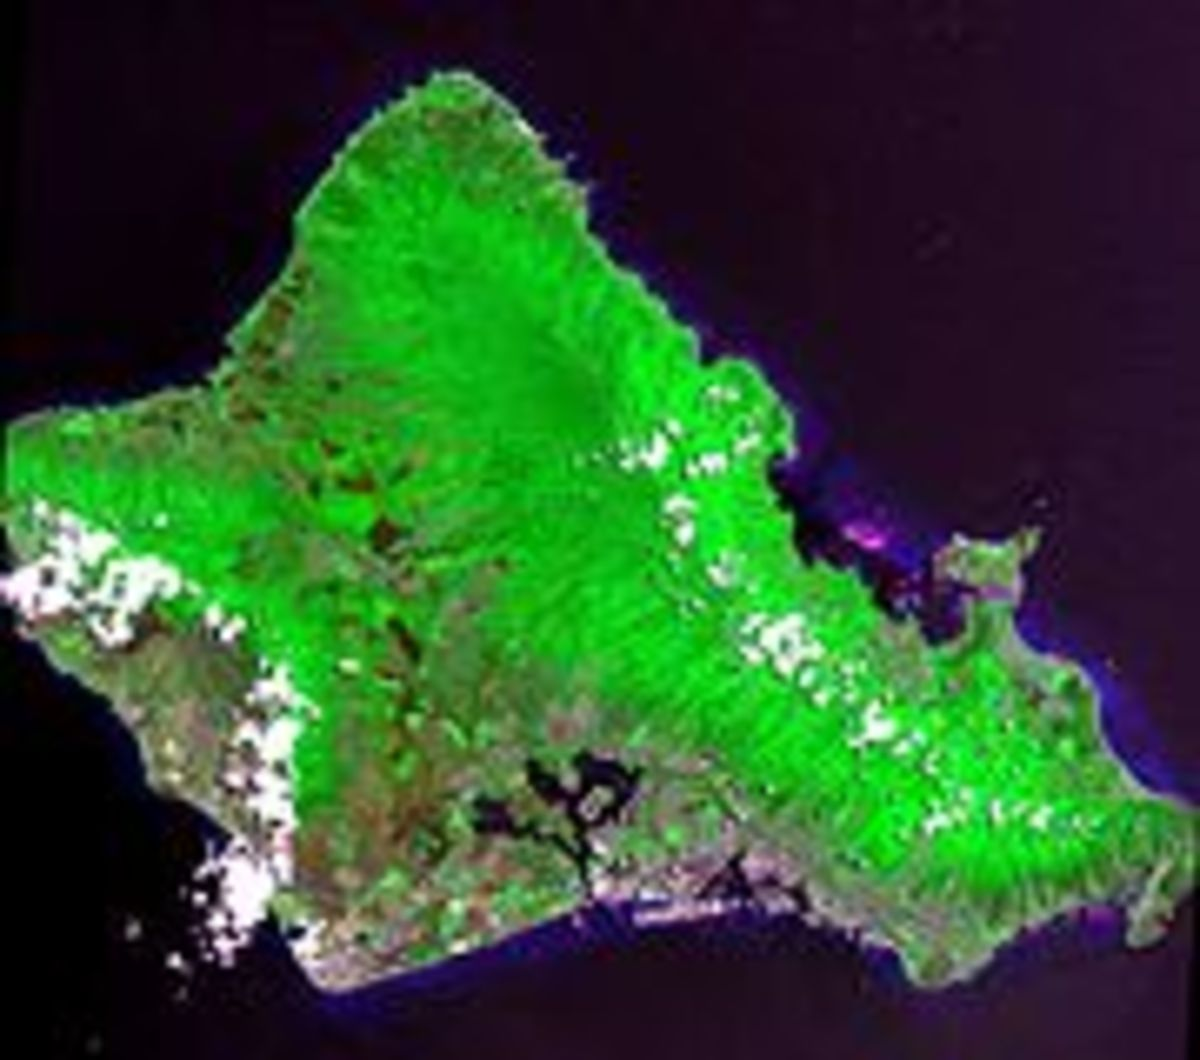 Oahu has a land area of 596.7 square miles